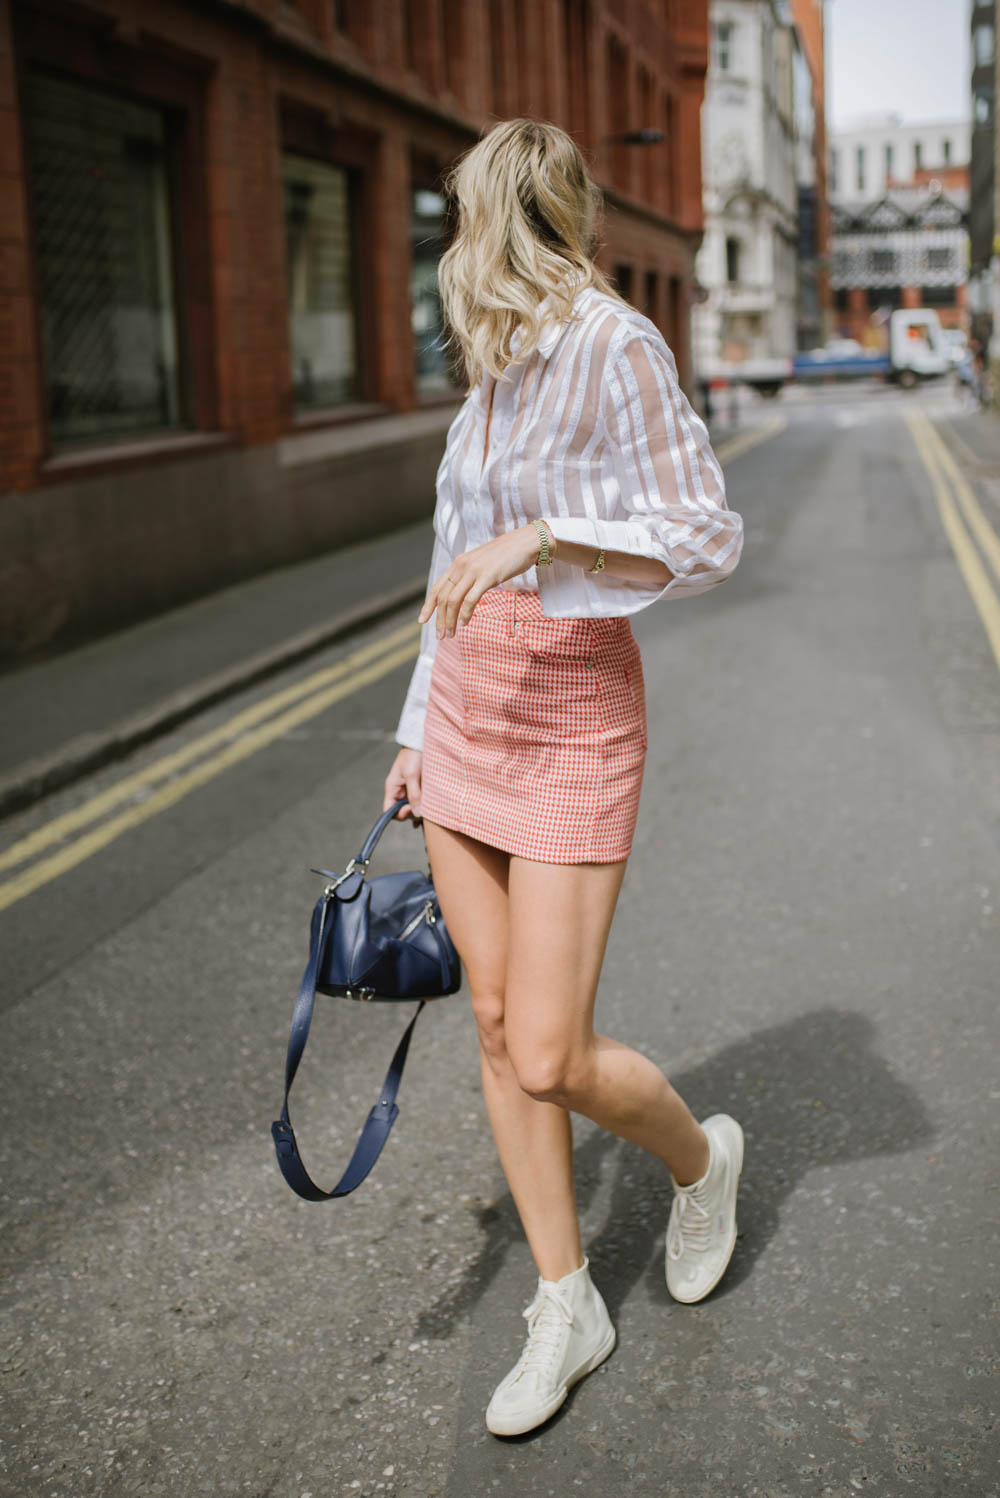 Red-Topshop-skirt-final-edits-10.jpg